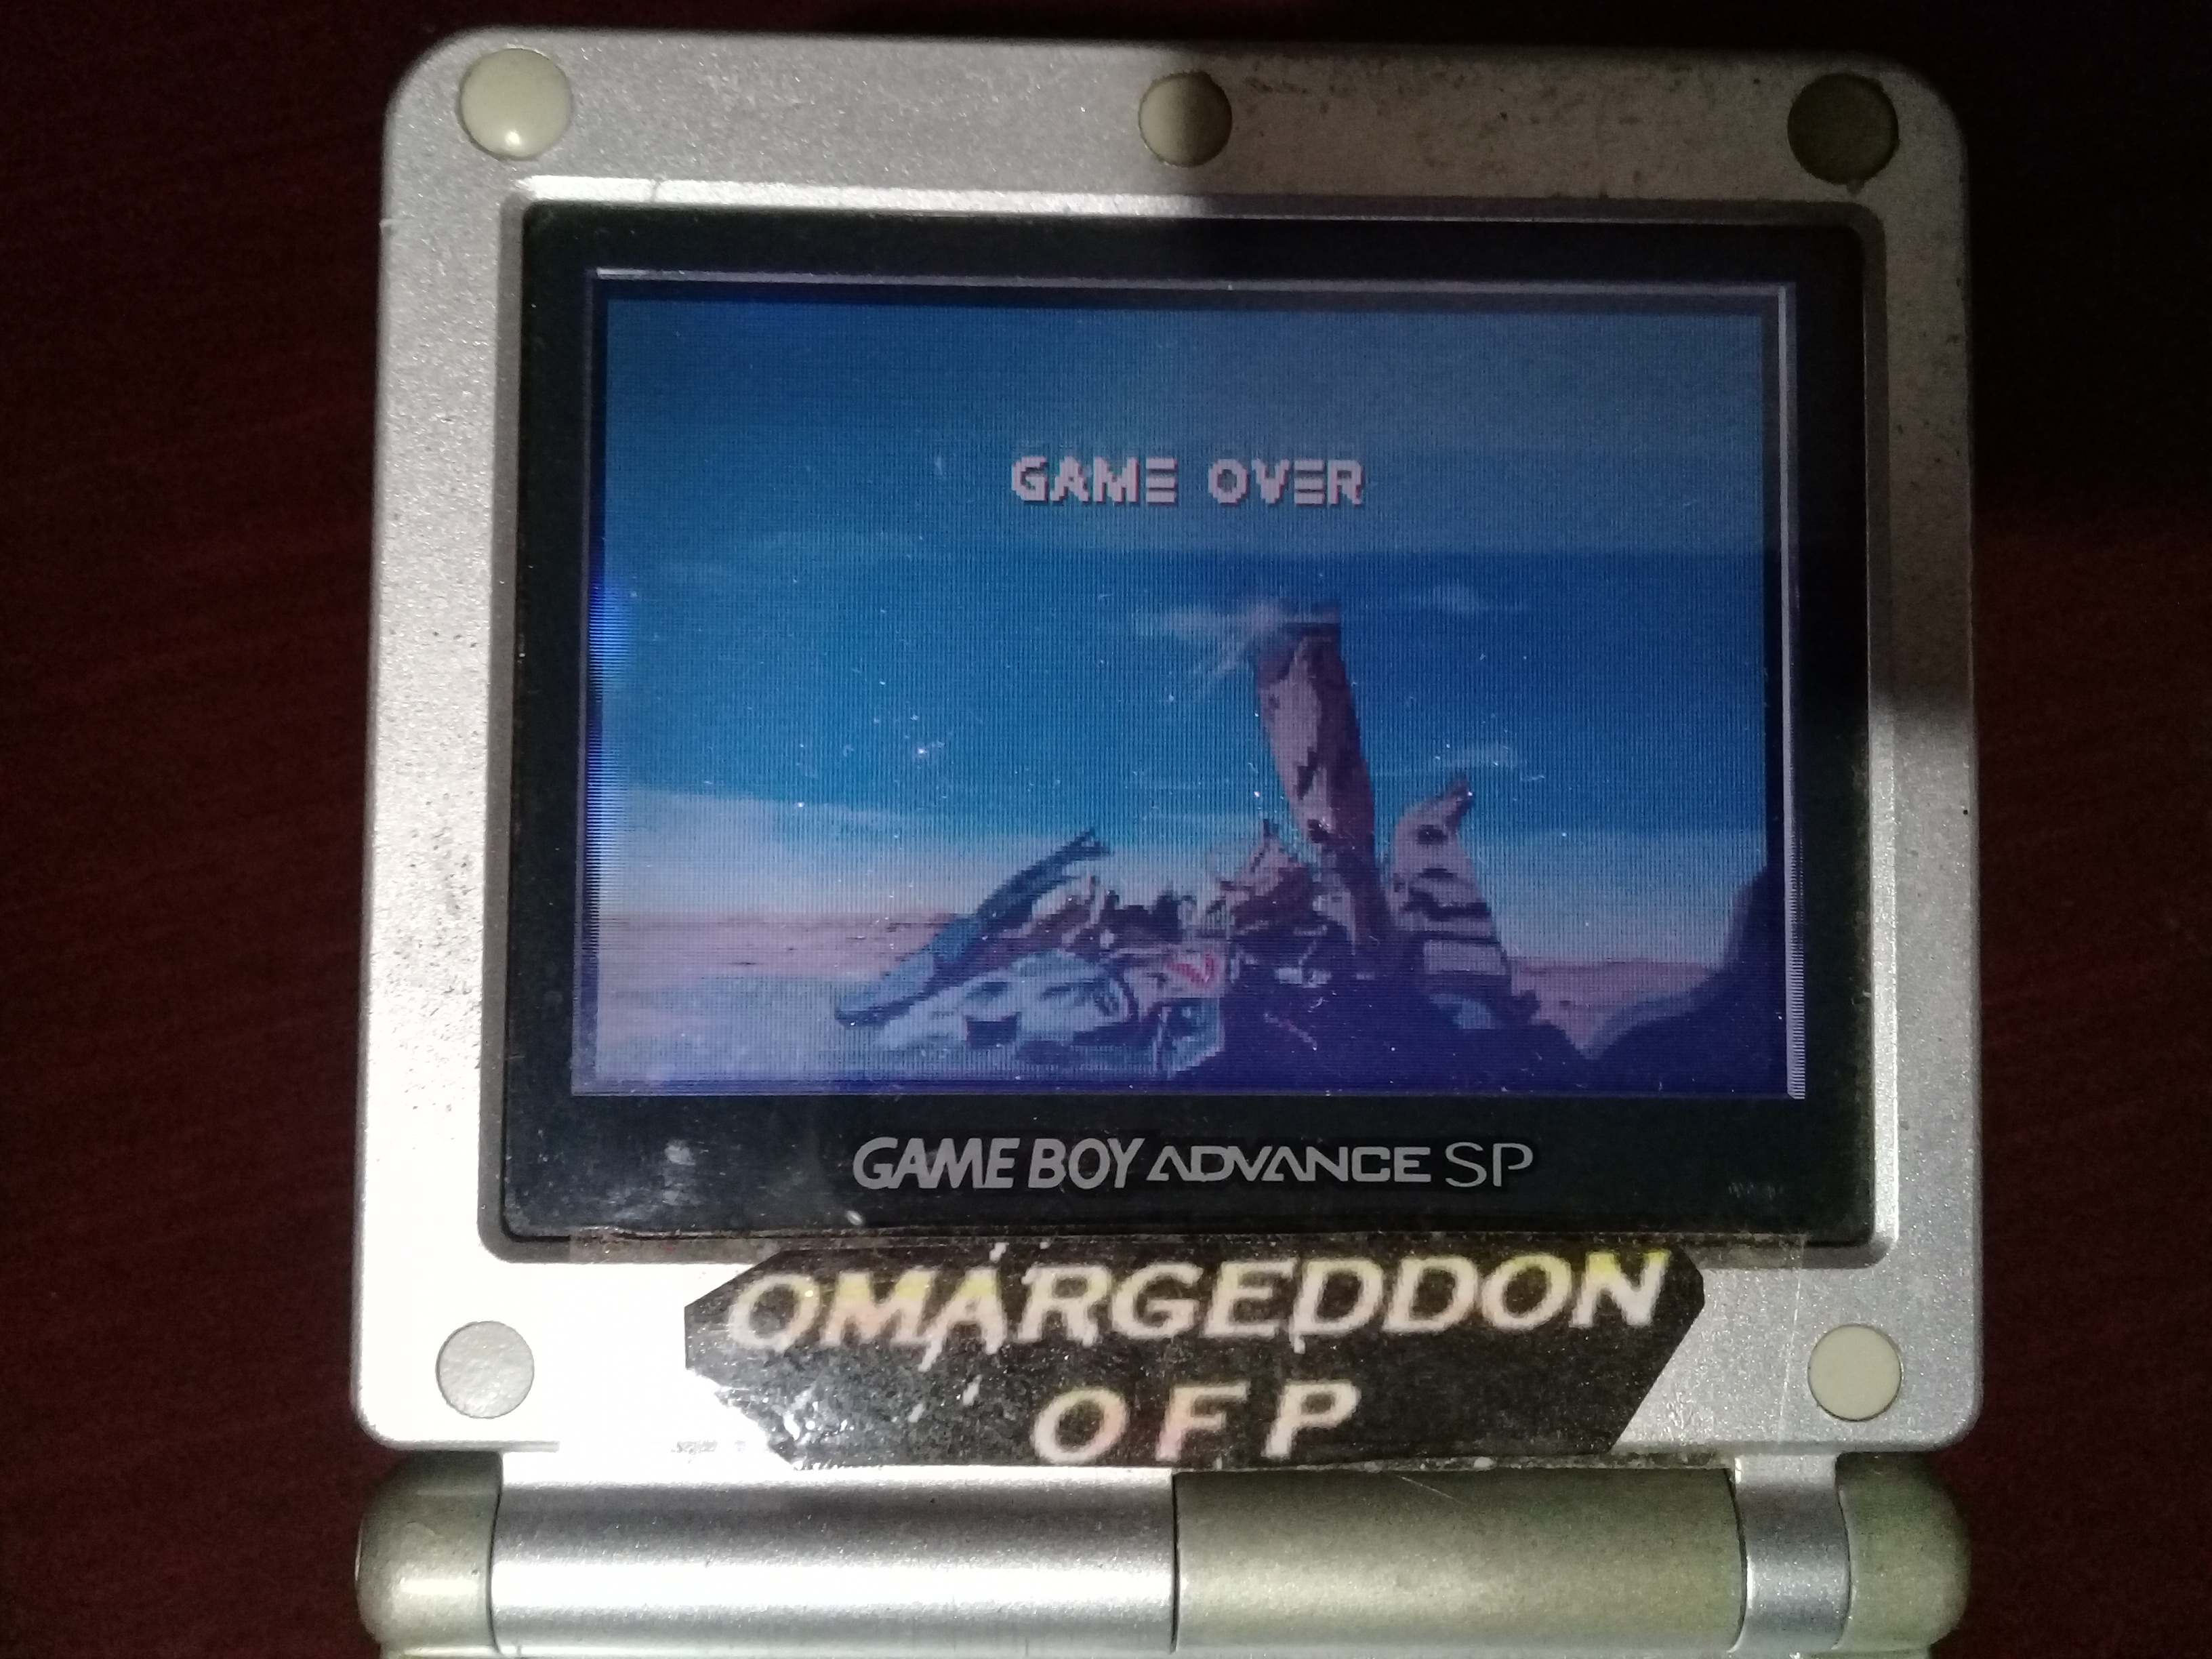 omargeddon: Robotech: The Macross Saga (GBA) 35,000 points on 2019-11-02 02:10:49